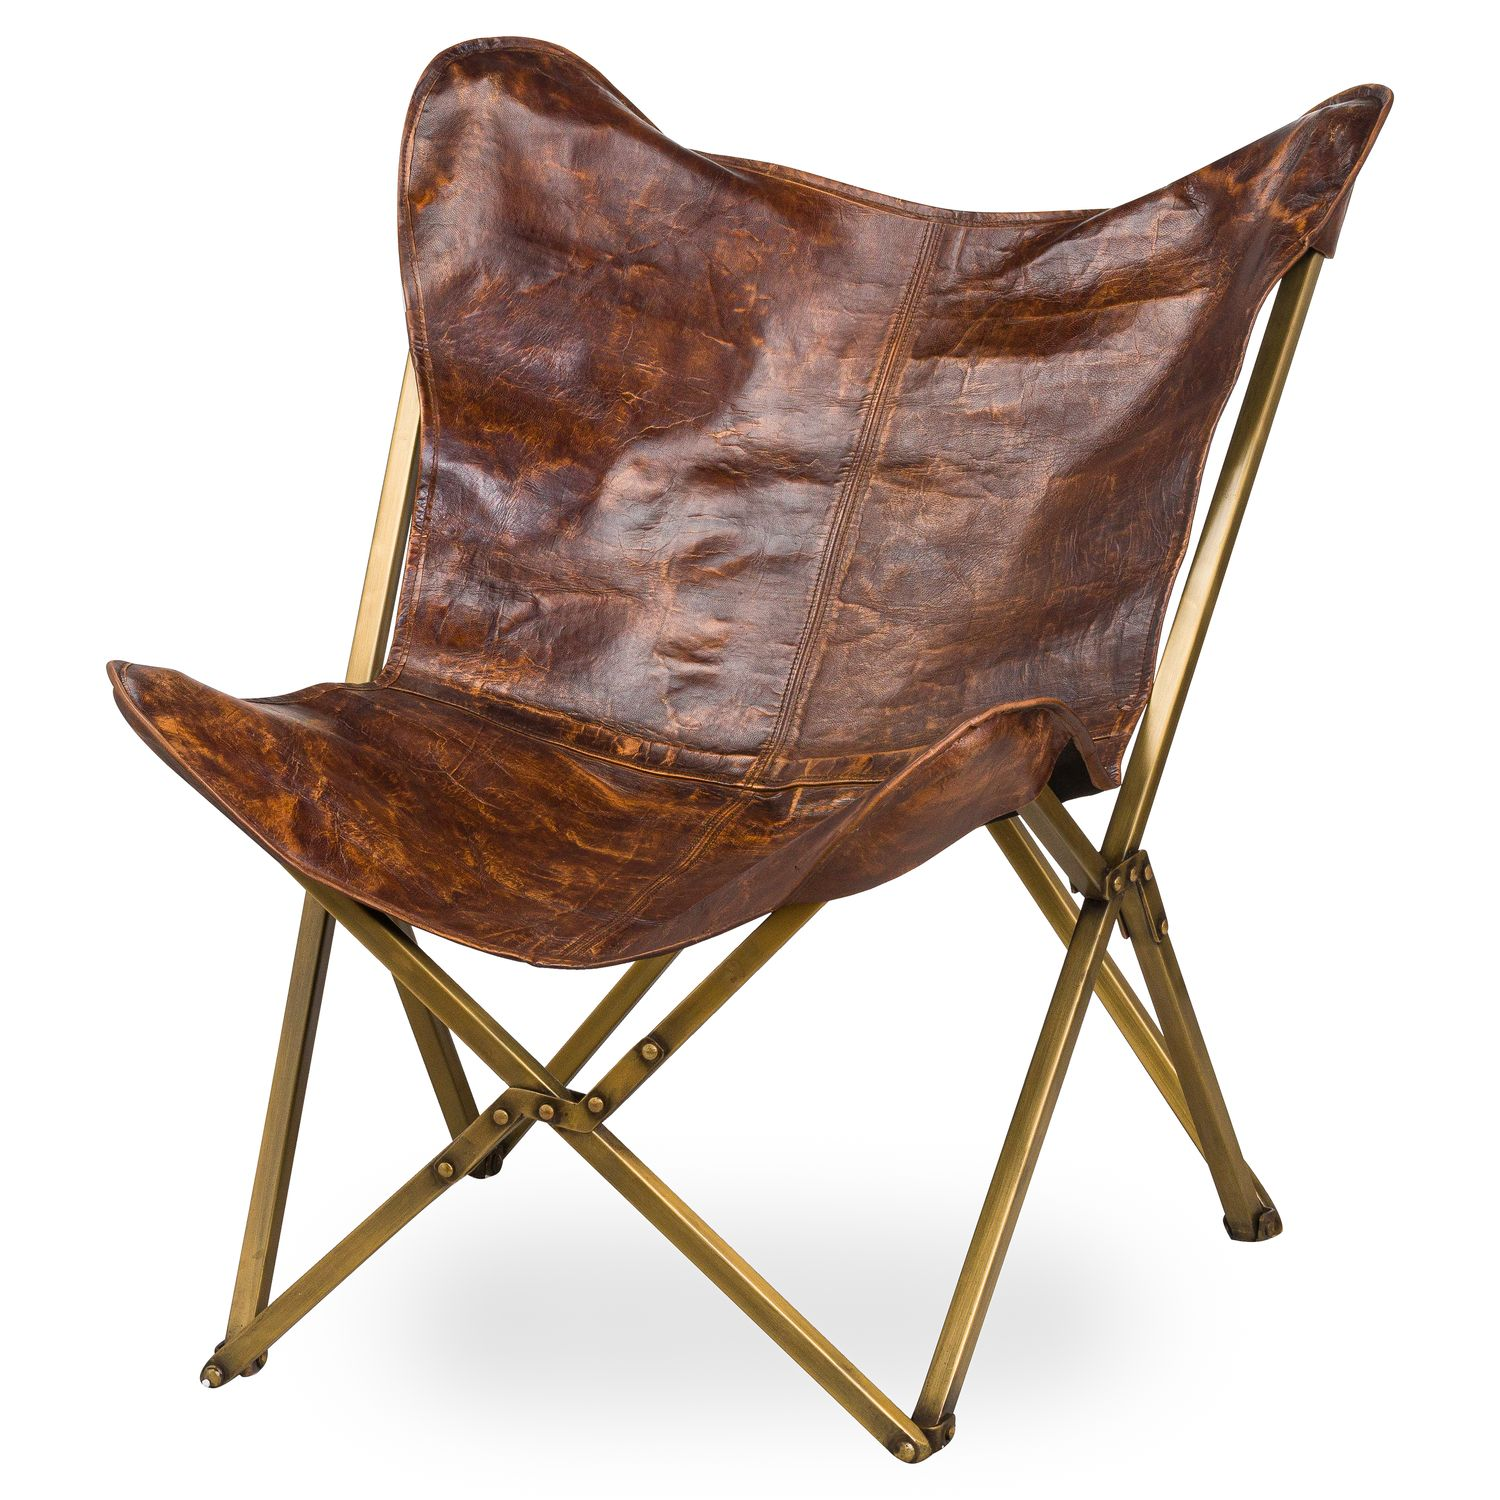 Bertie Leather Butterfly Chair